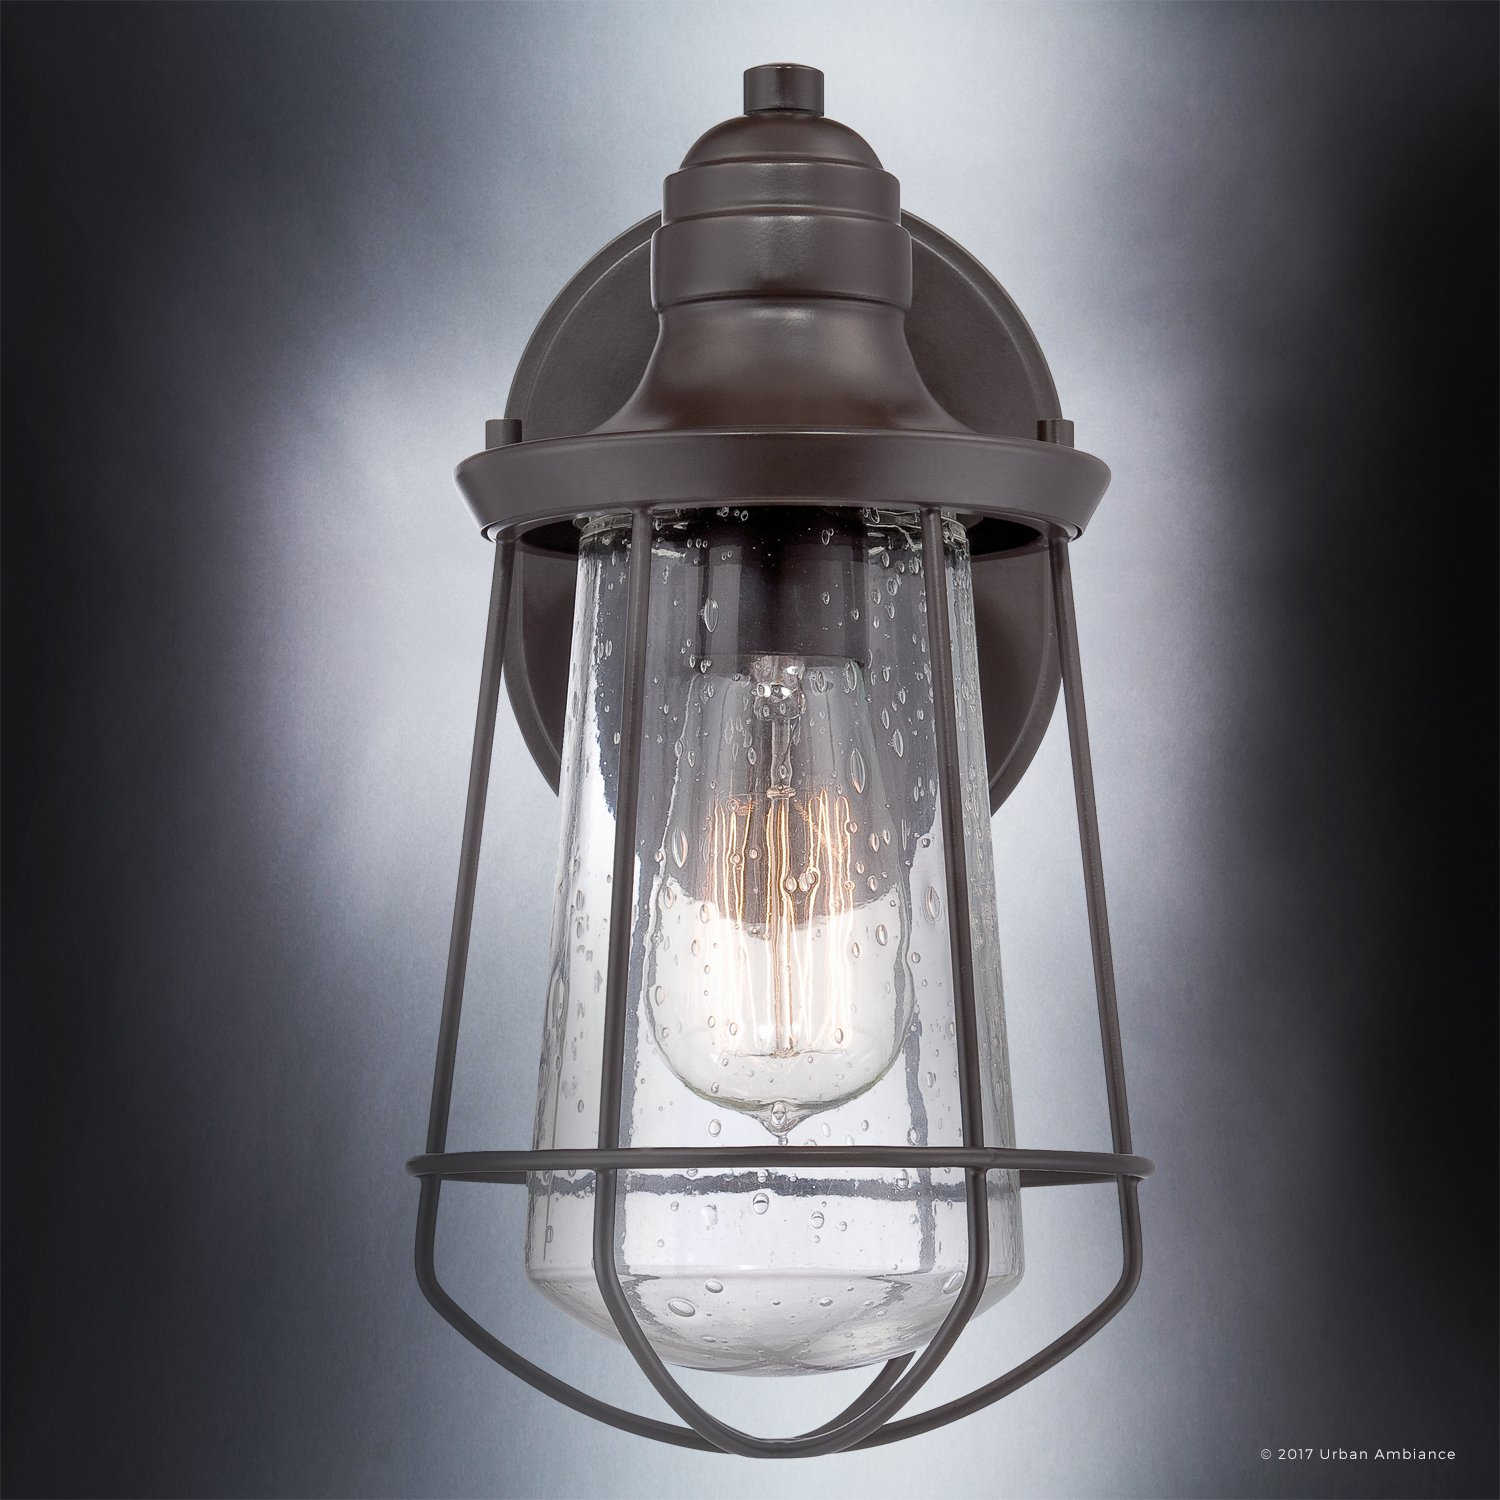 Luxury Vintage Outdoor Wall Light, Small Size: 11.25''H x 6.25''W, with Nautical Style Elements, Cage Design, Estate Bronze Finish and Seeded Glass, Includes Edison Bulb, UQL1120 by Urban Ambiance by Urban Ambiance (Image #5)